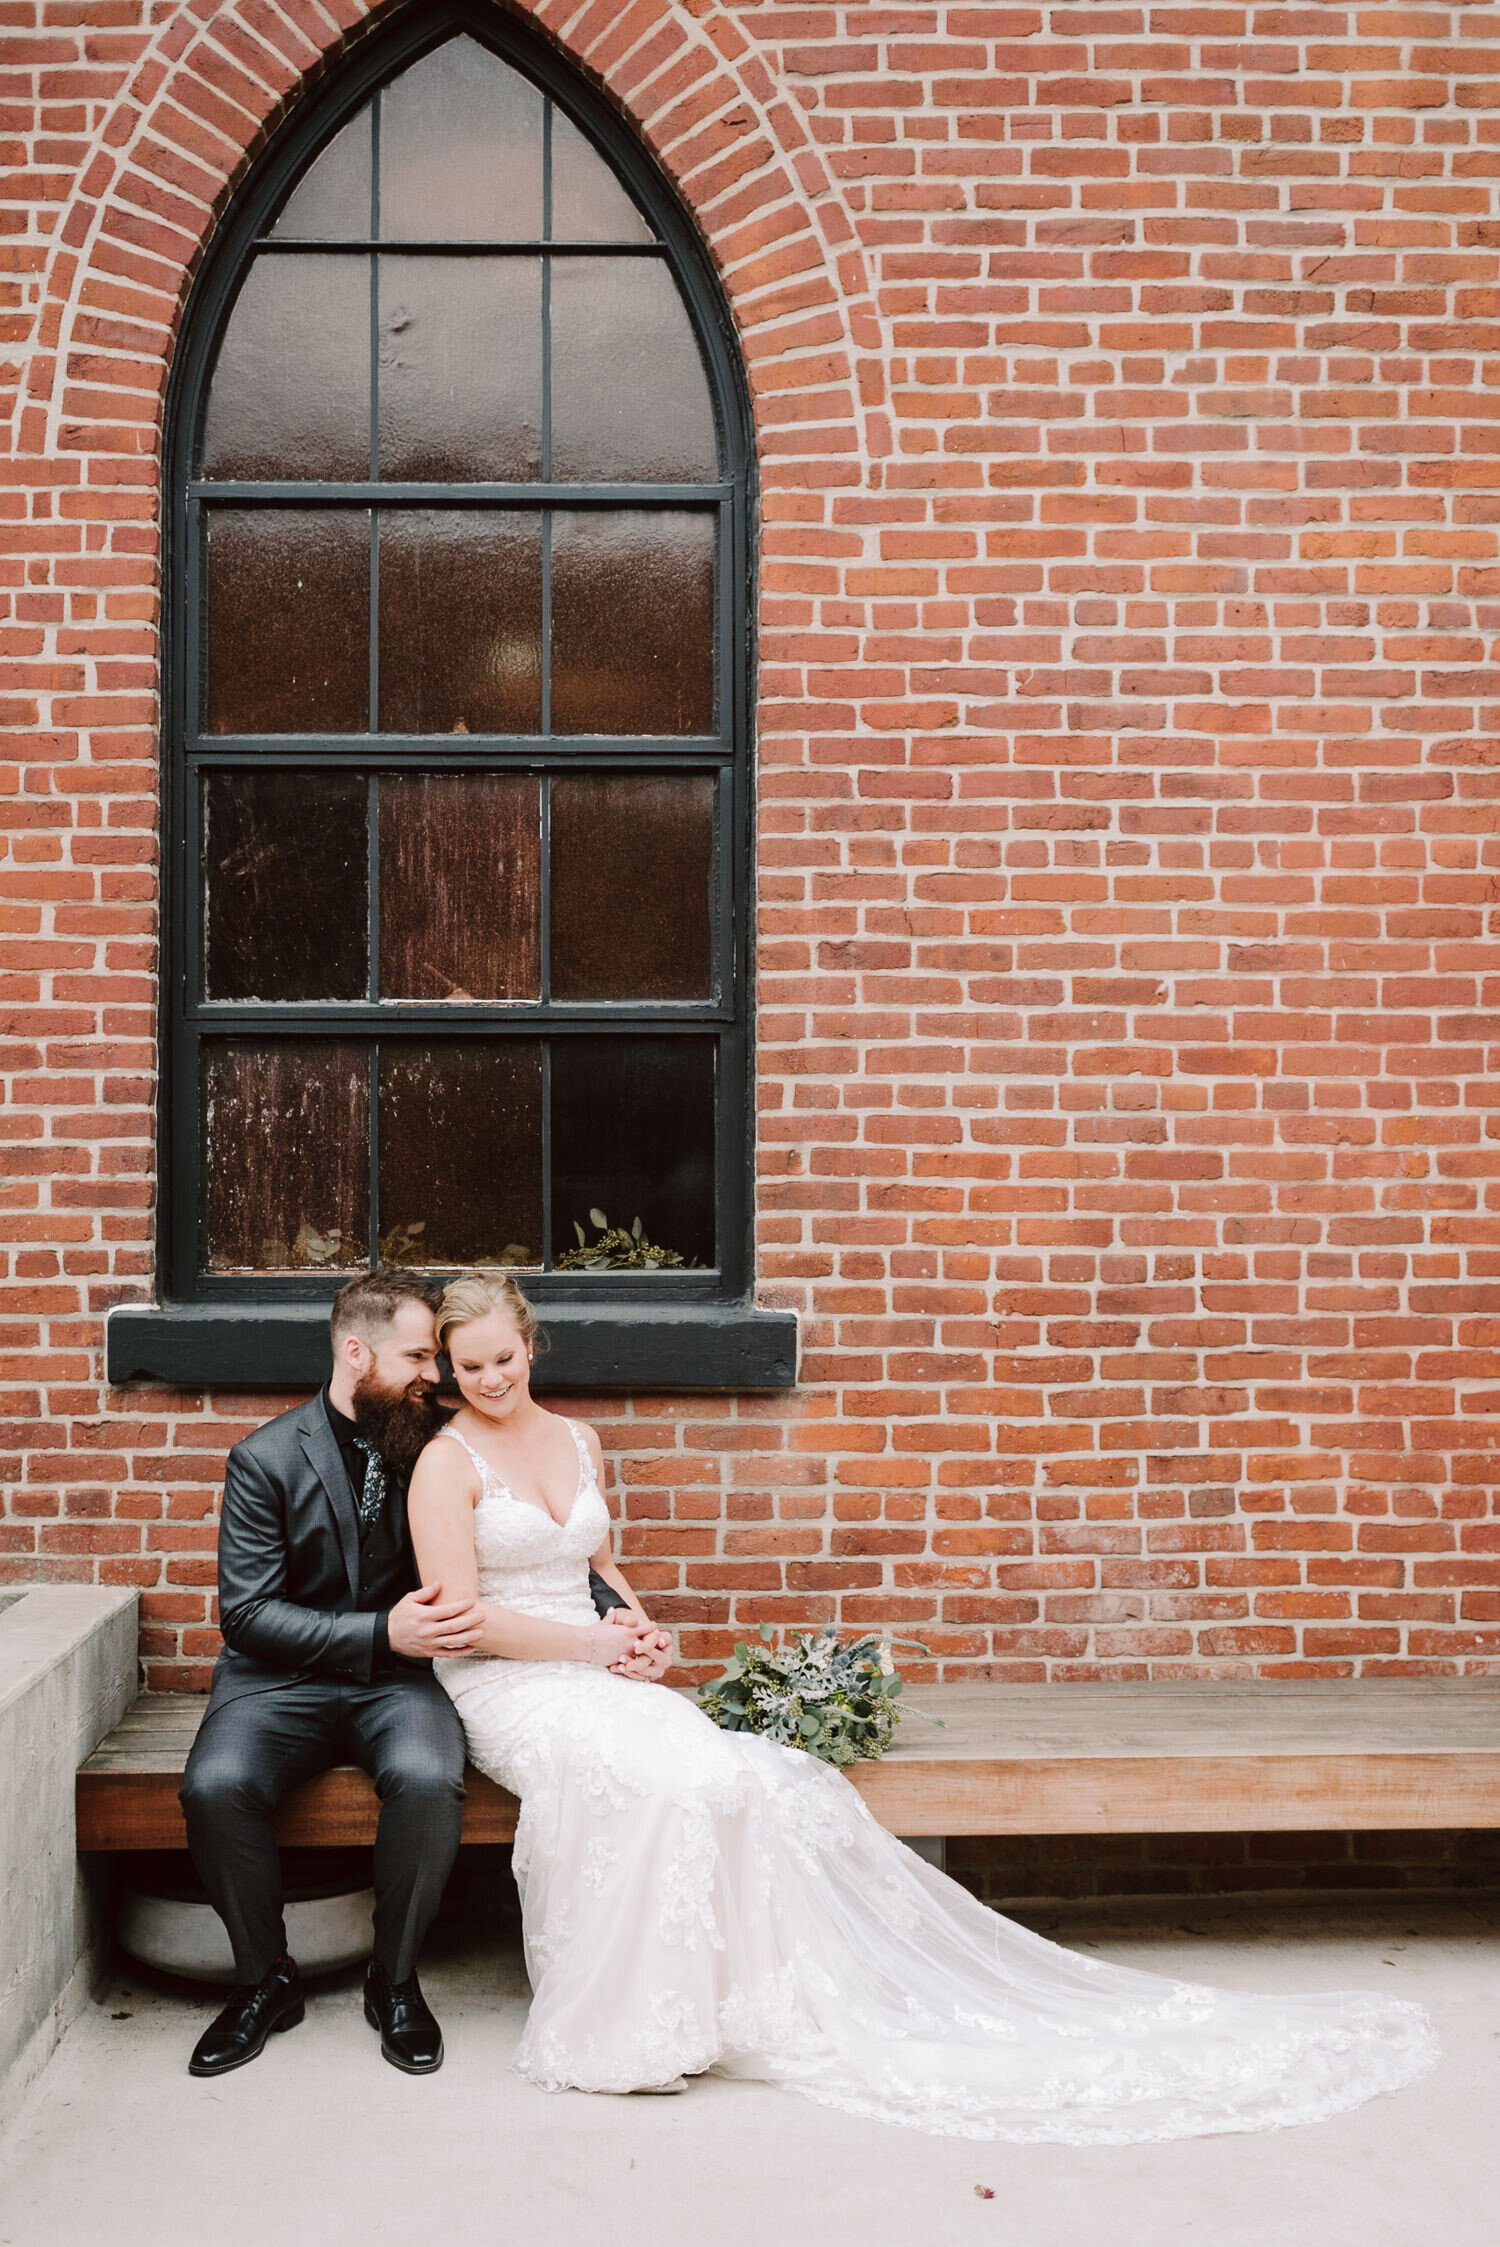 clementine-nashville-wedding-17